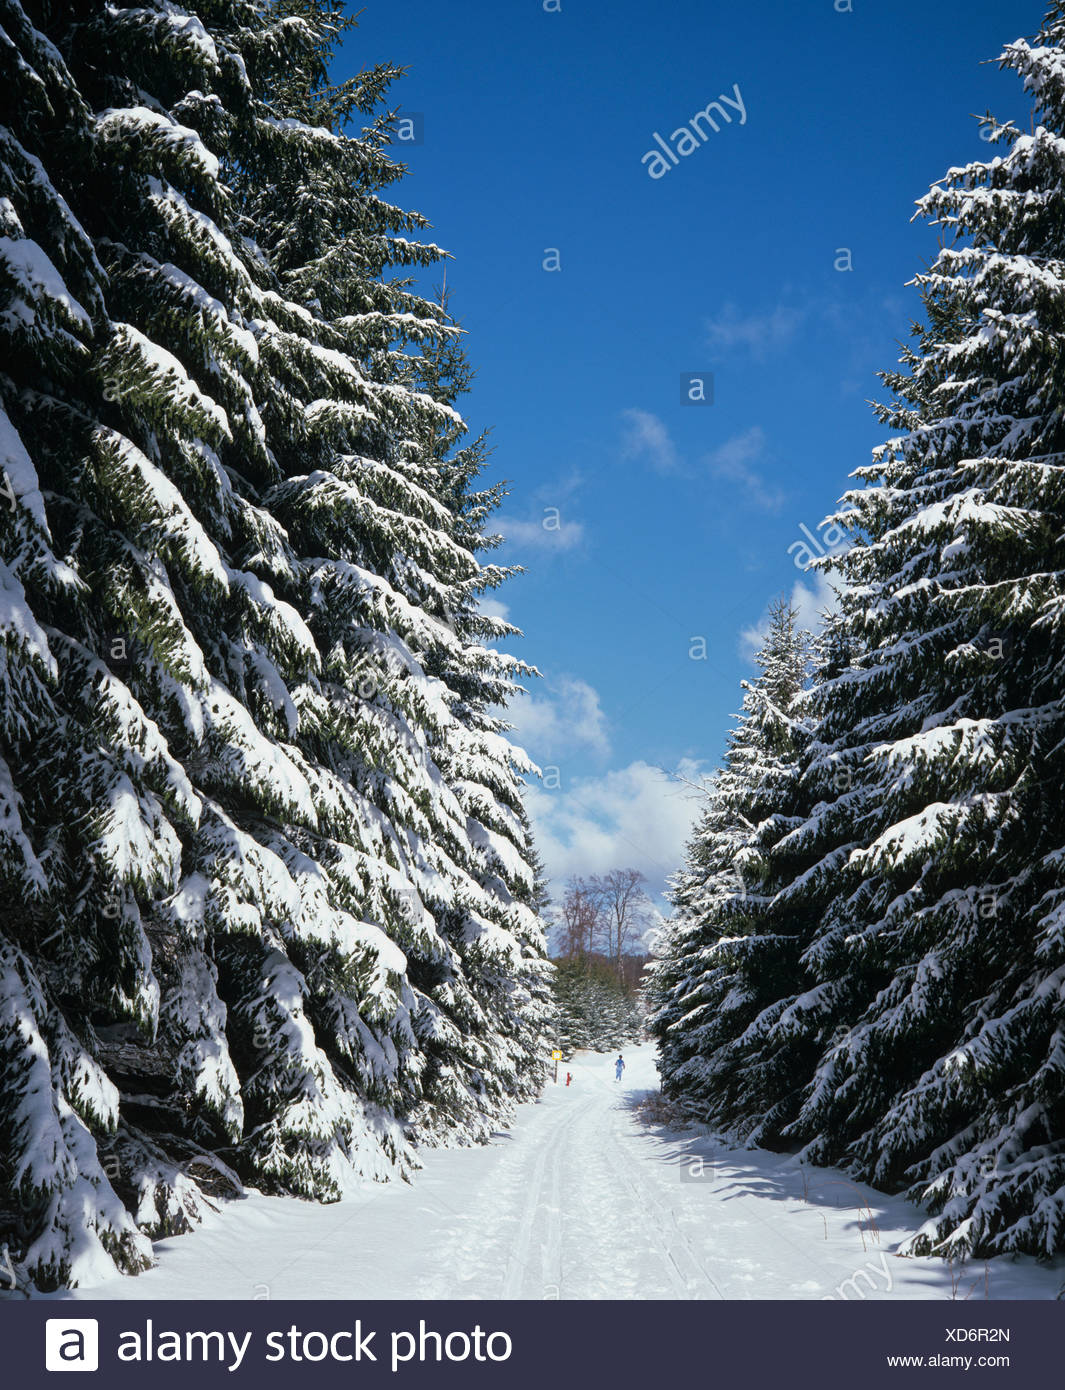 Fir trees, forest, snow-covered winter landscape, fresh snow, cross-country trails - Stock Image